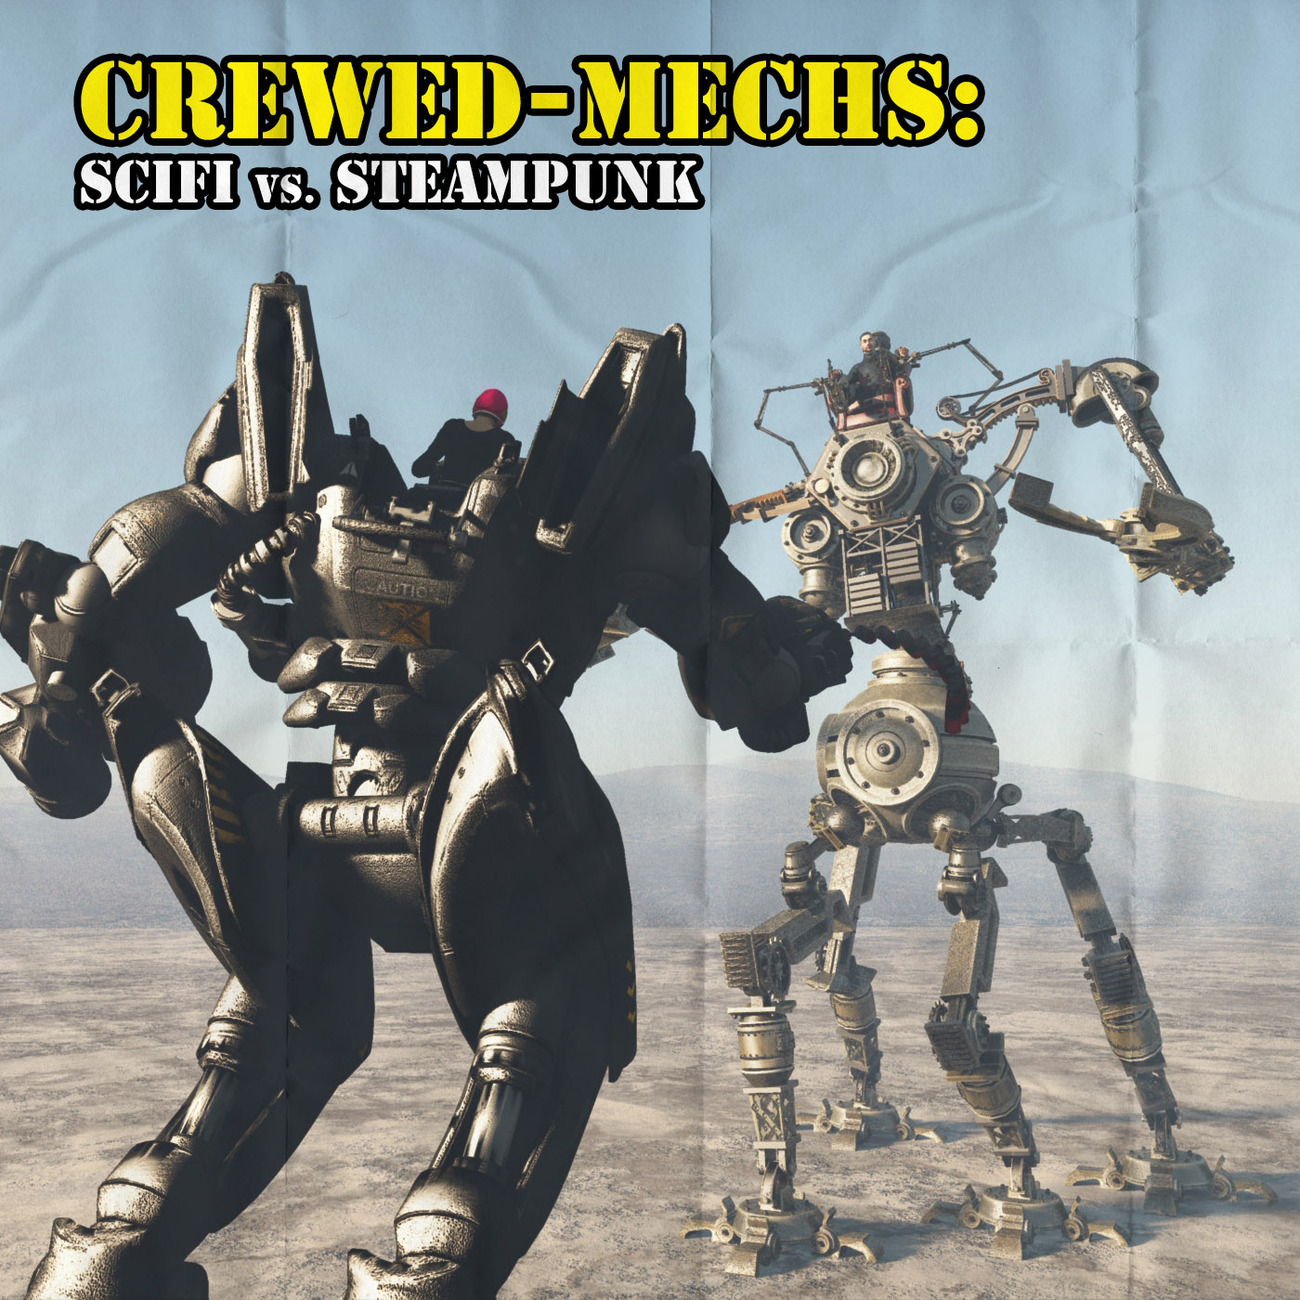 Crewed-Mechs: SciFi vs. Steampunk by rps53